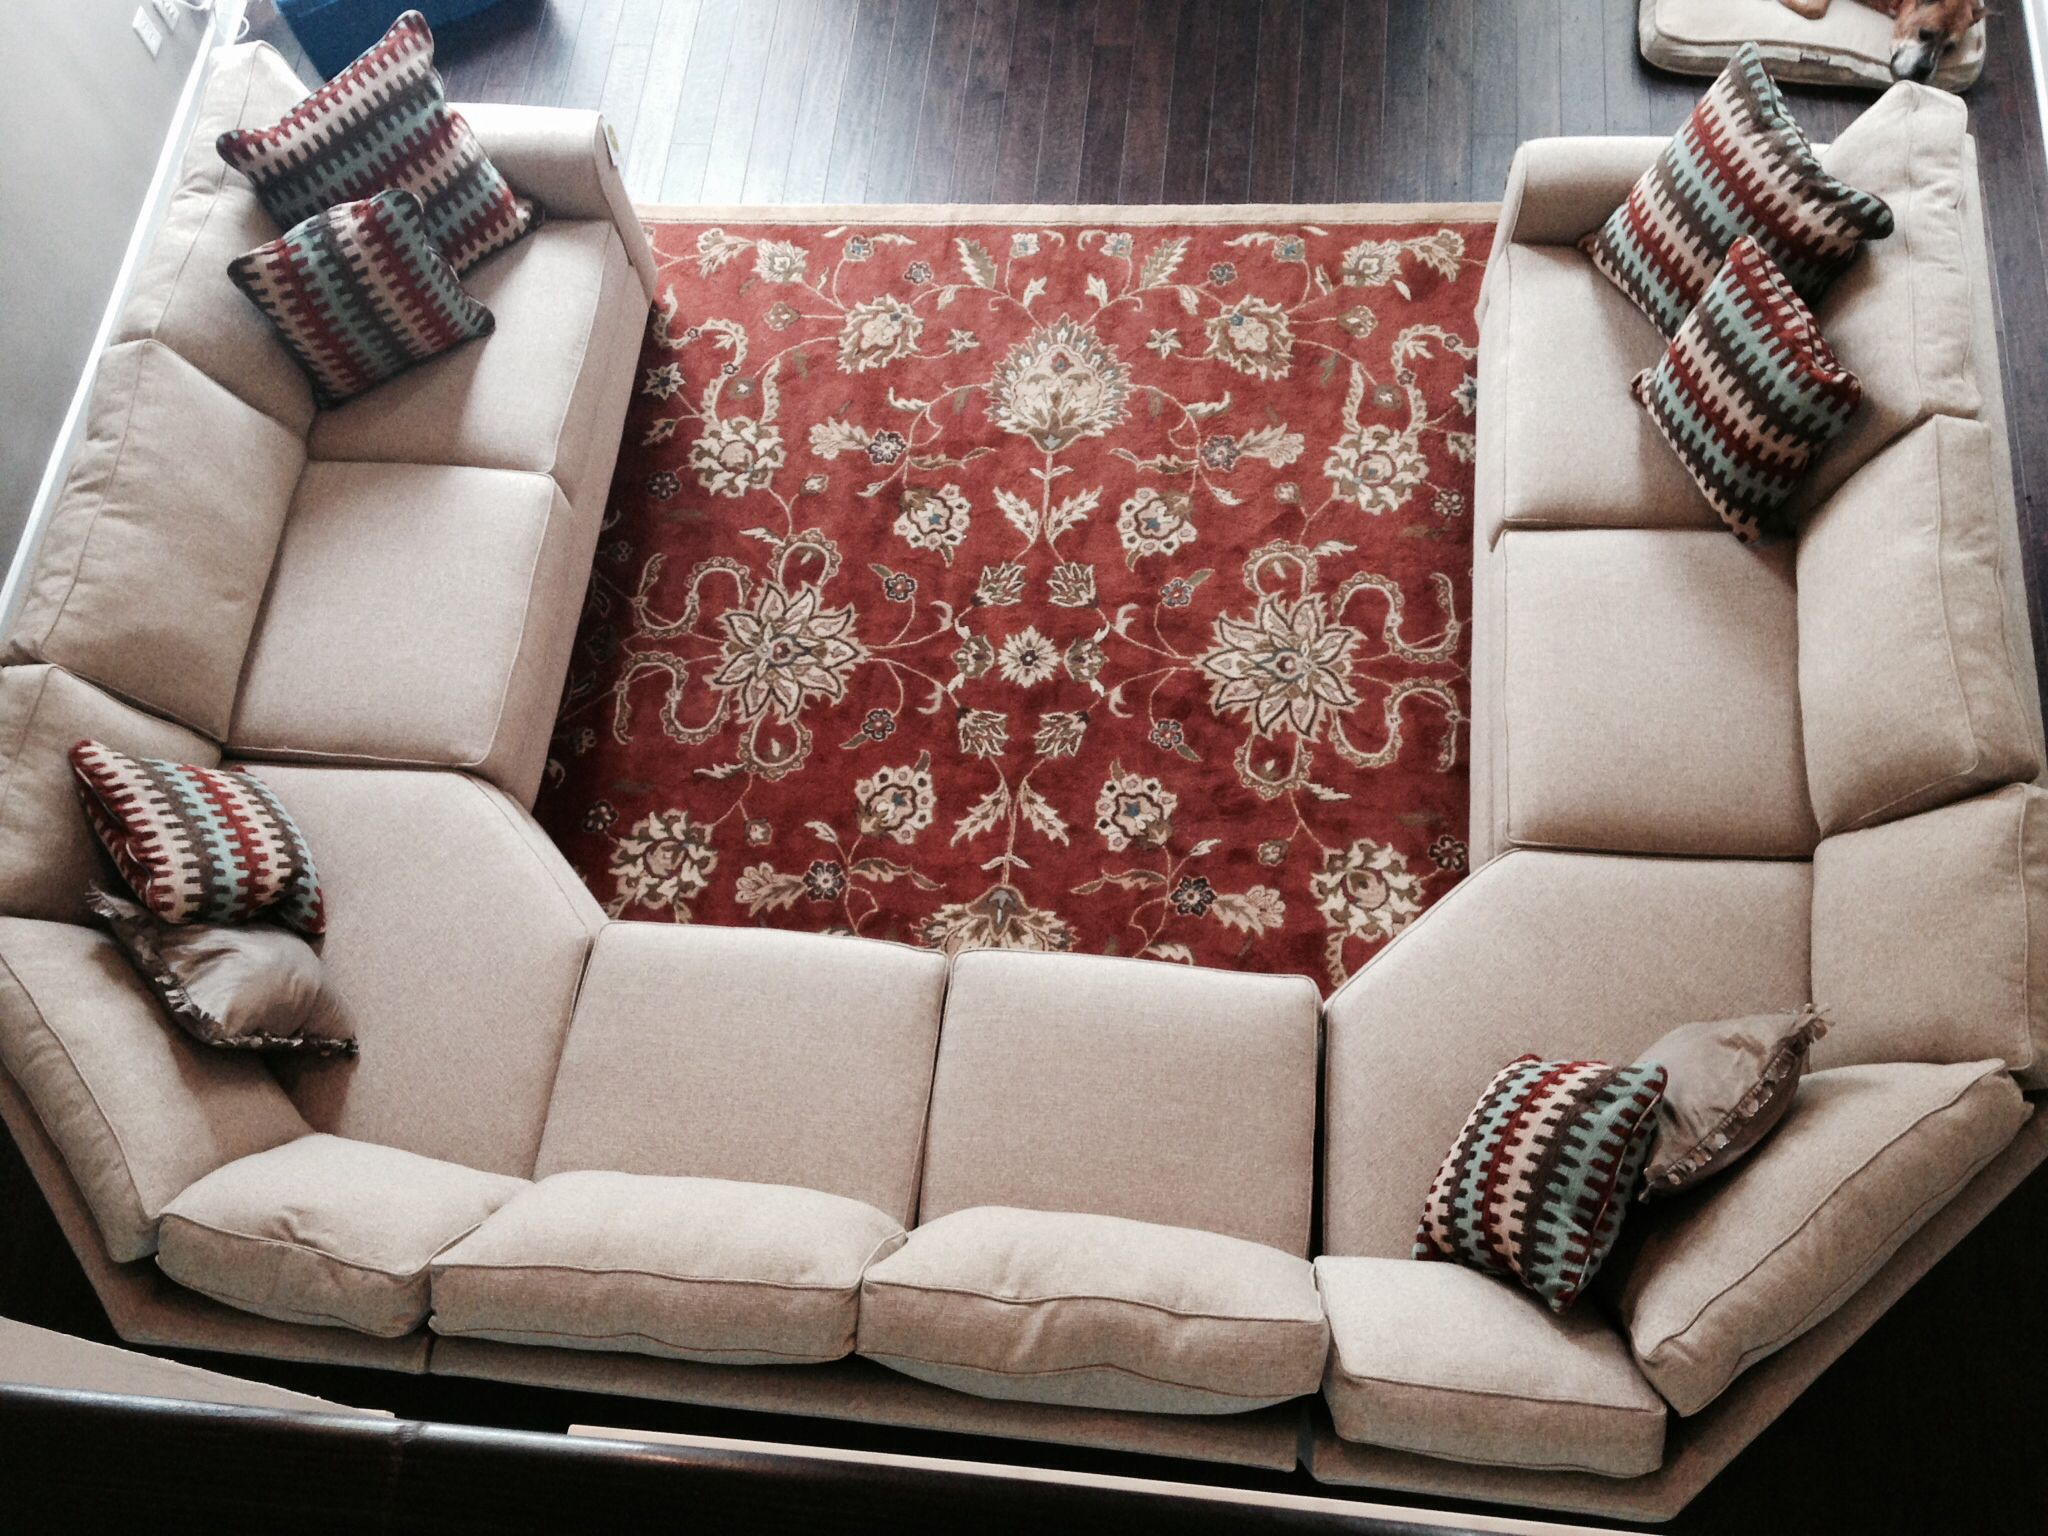 sectional sofa u shaped plummers oregon review our new inspired by the crate and barrel